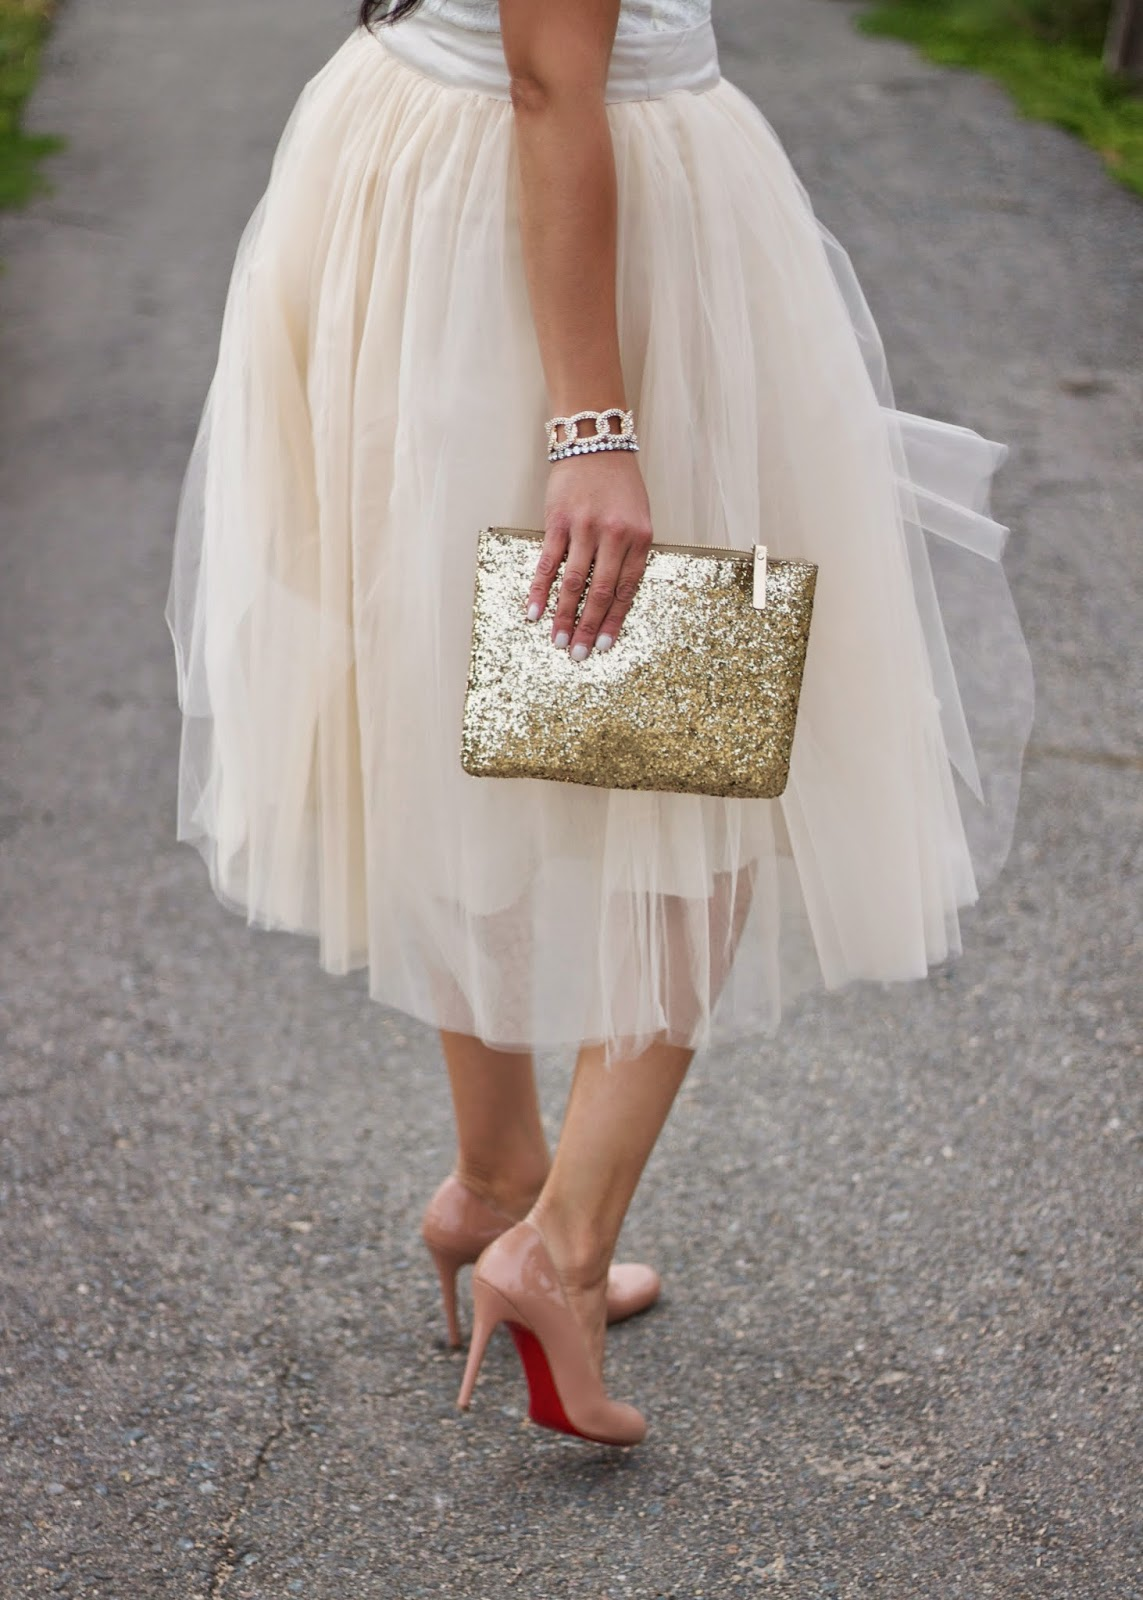 Simple Patent Red Sole Pump Nude, Christian Louboutin nude heels, christian louboutin patent pumps, gold and ivory tulle skirt, tutu and loubs